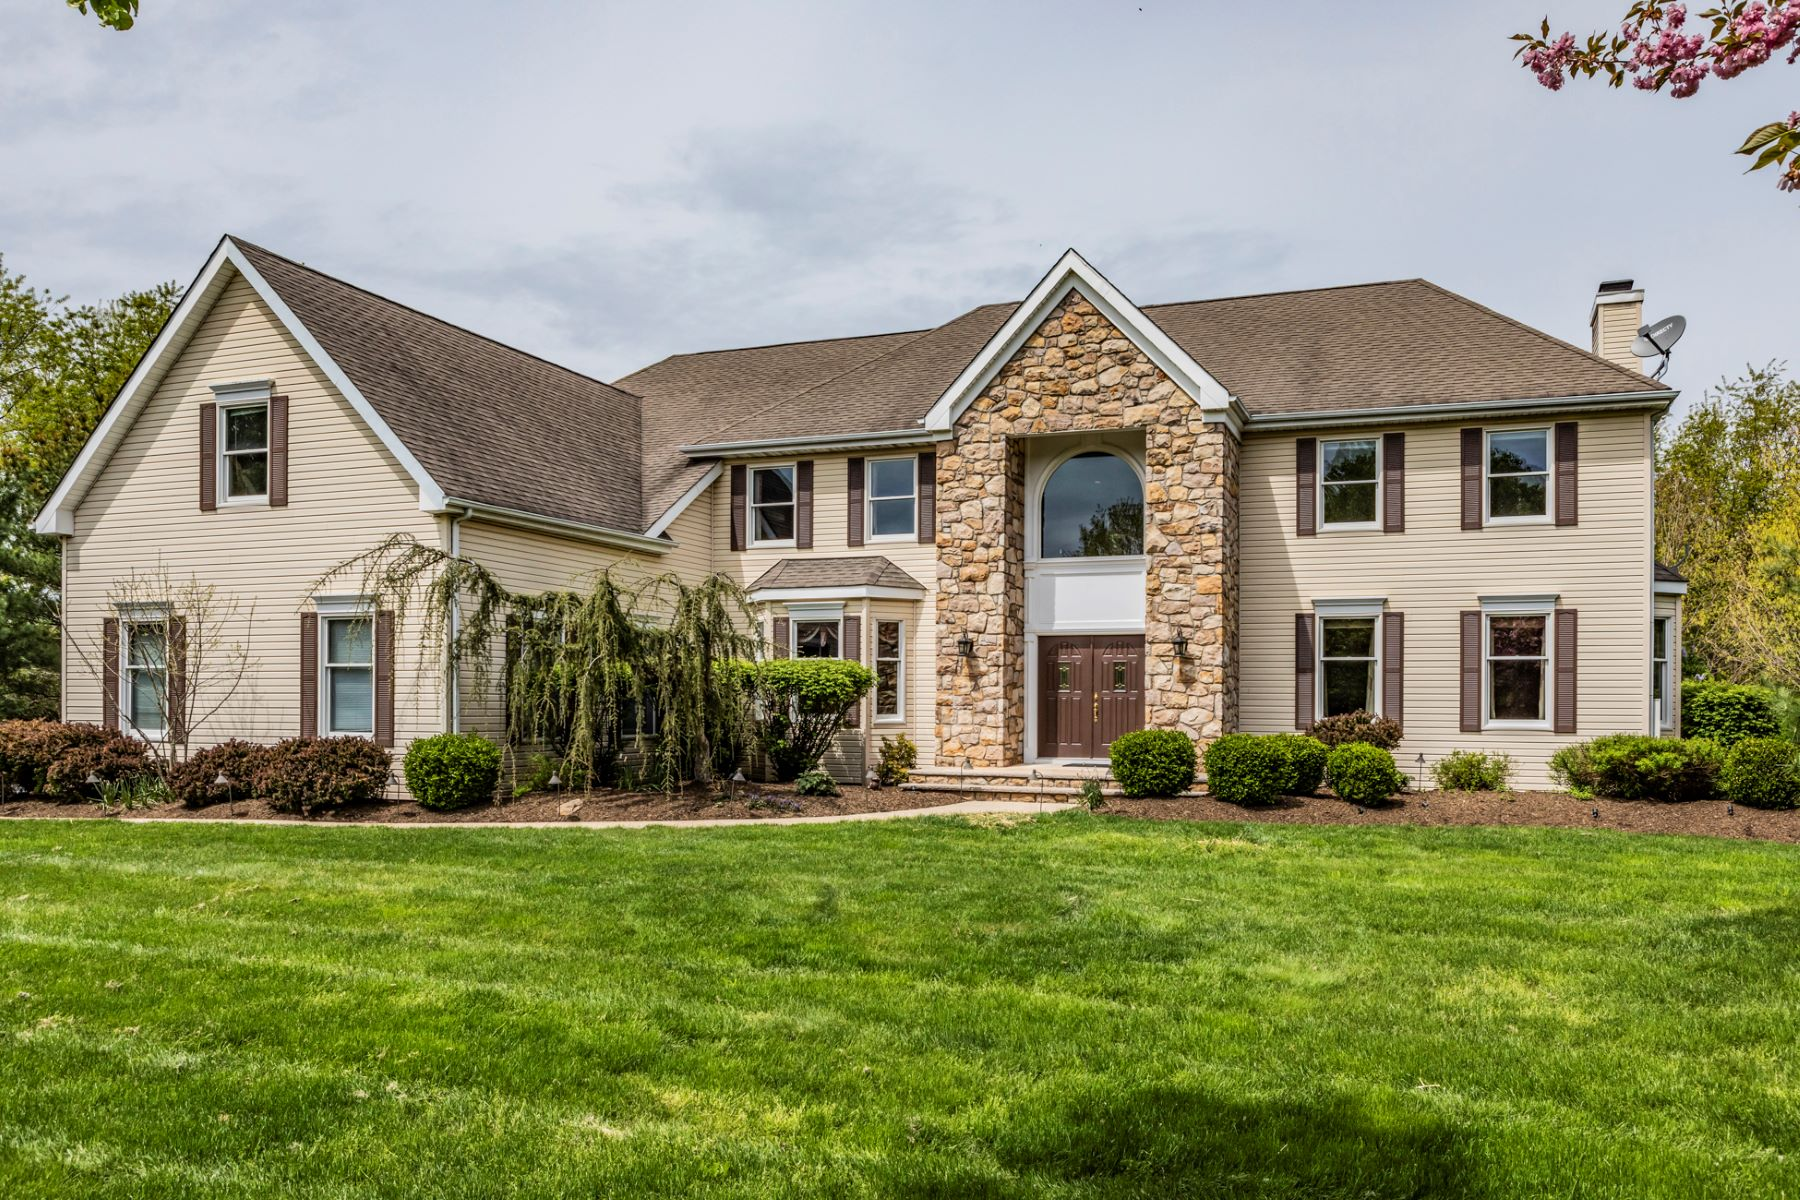 Single Family Home for Sale at Create Lasting Memories Here 121 Saxon Way, Skillman, New Jersey 08558 United States